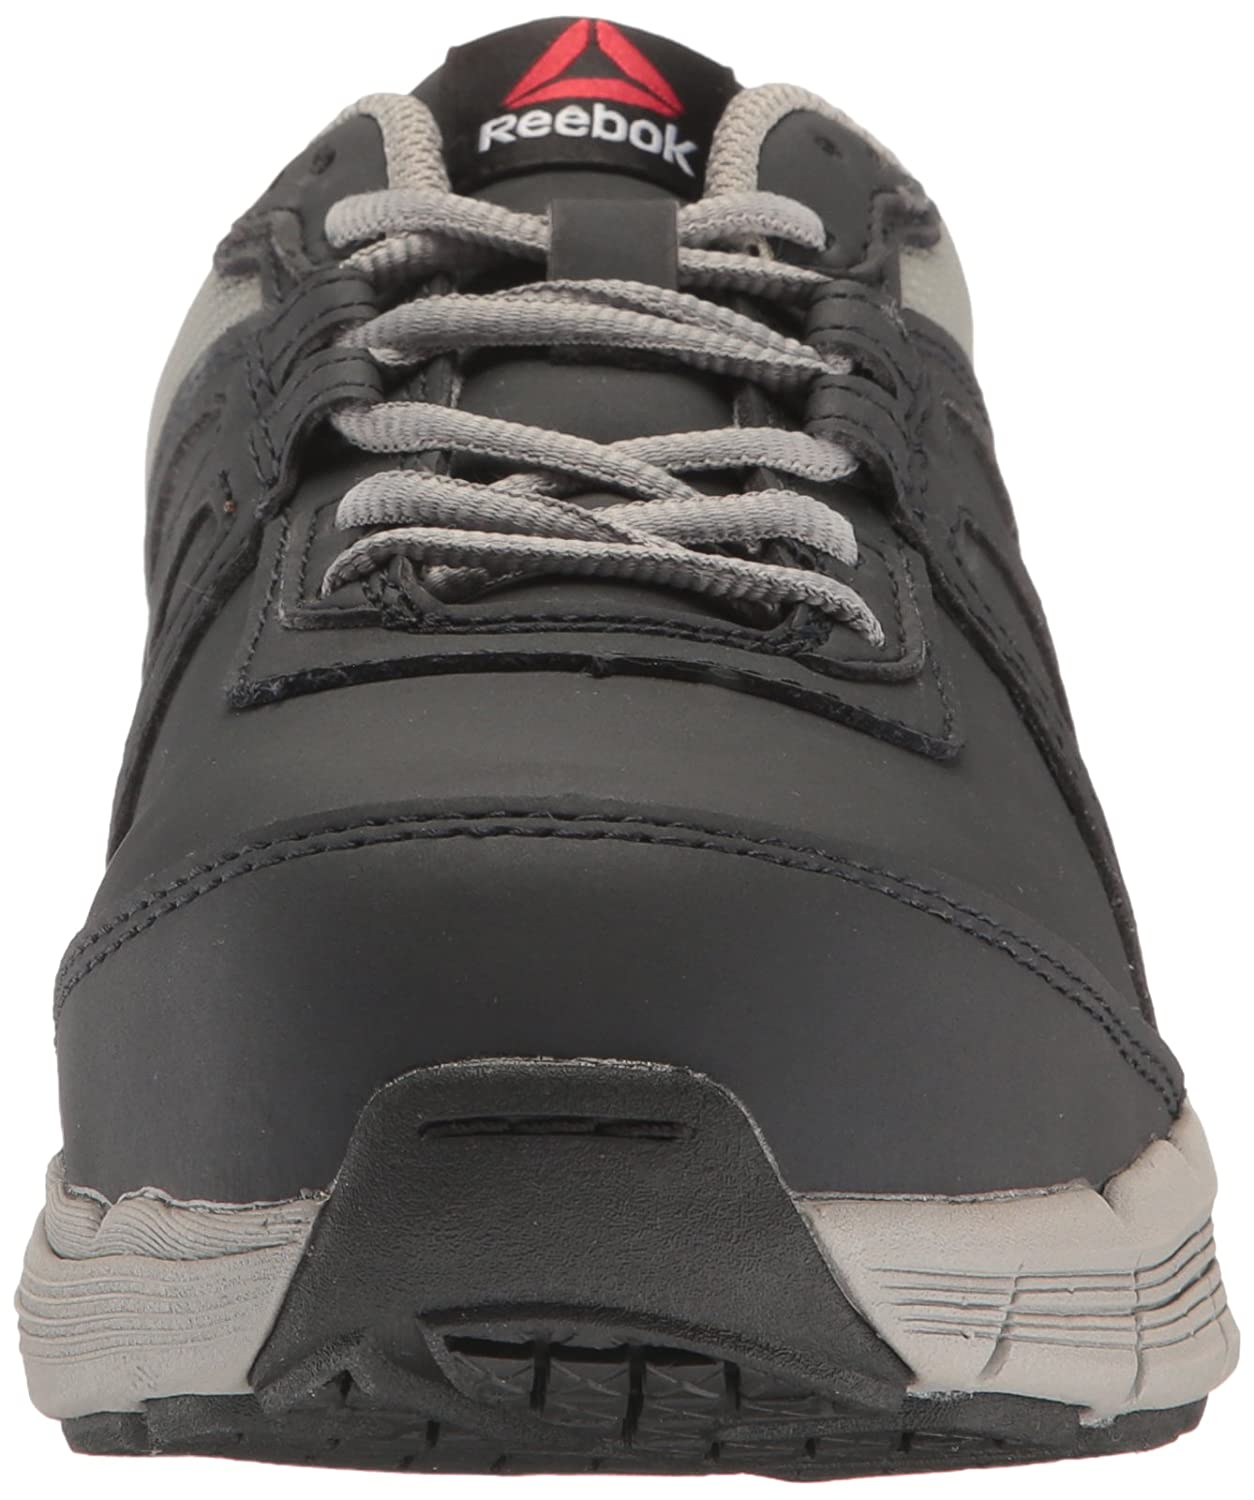 Amazon.com: Reebok Work Mens Guide Work RB3502 Industrial and Construction Shoe: Shoes